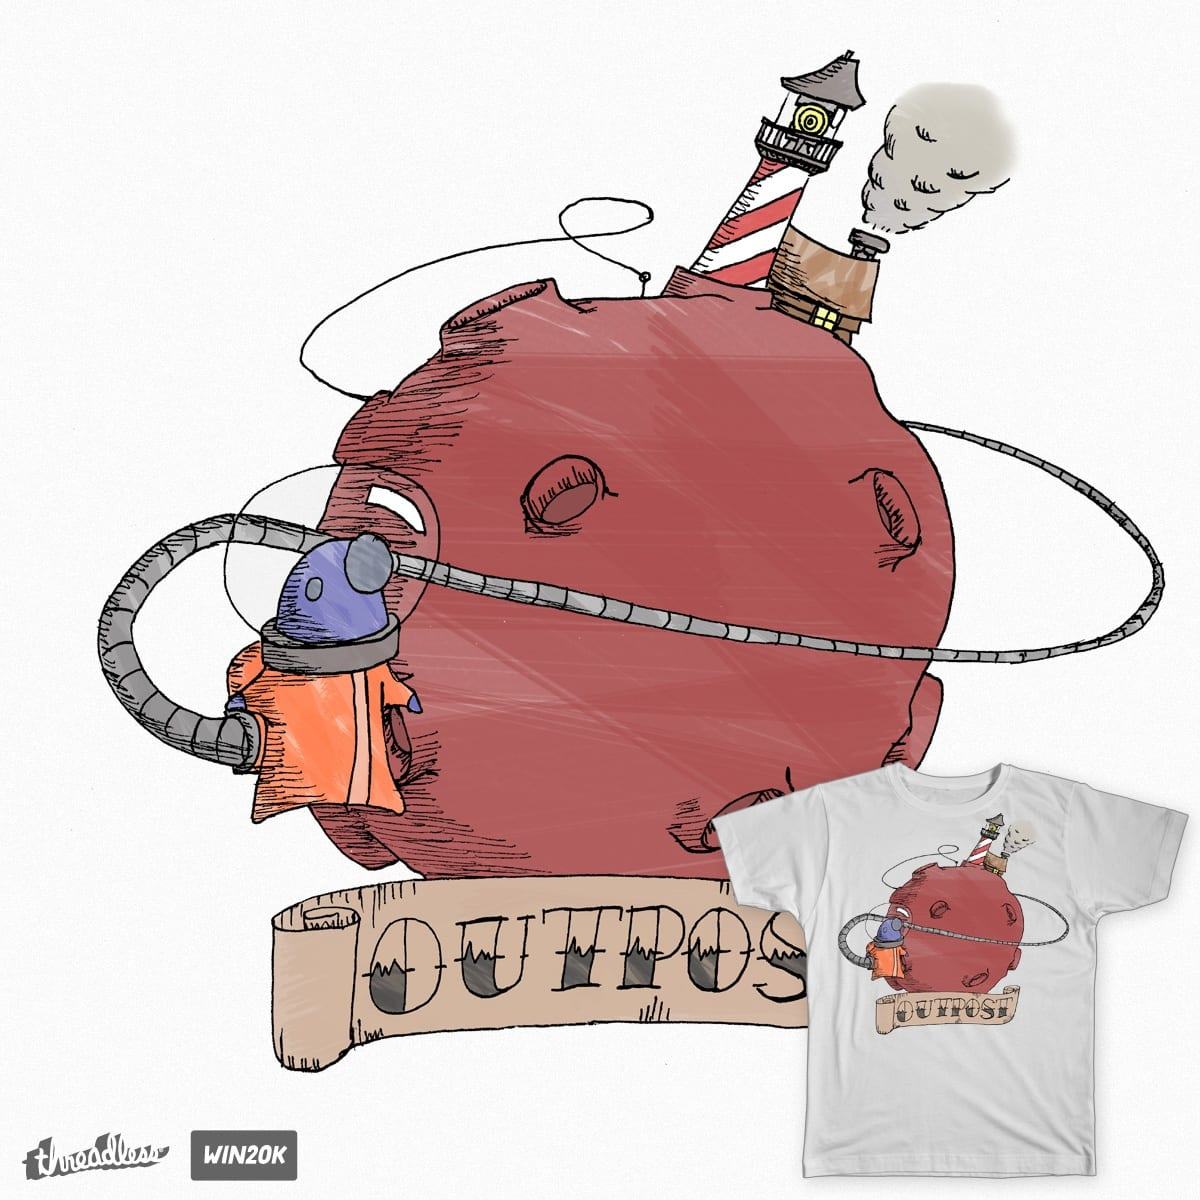 Space Outpost by TheSteeb on Threadless